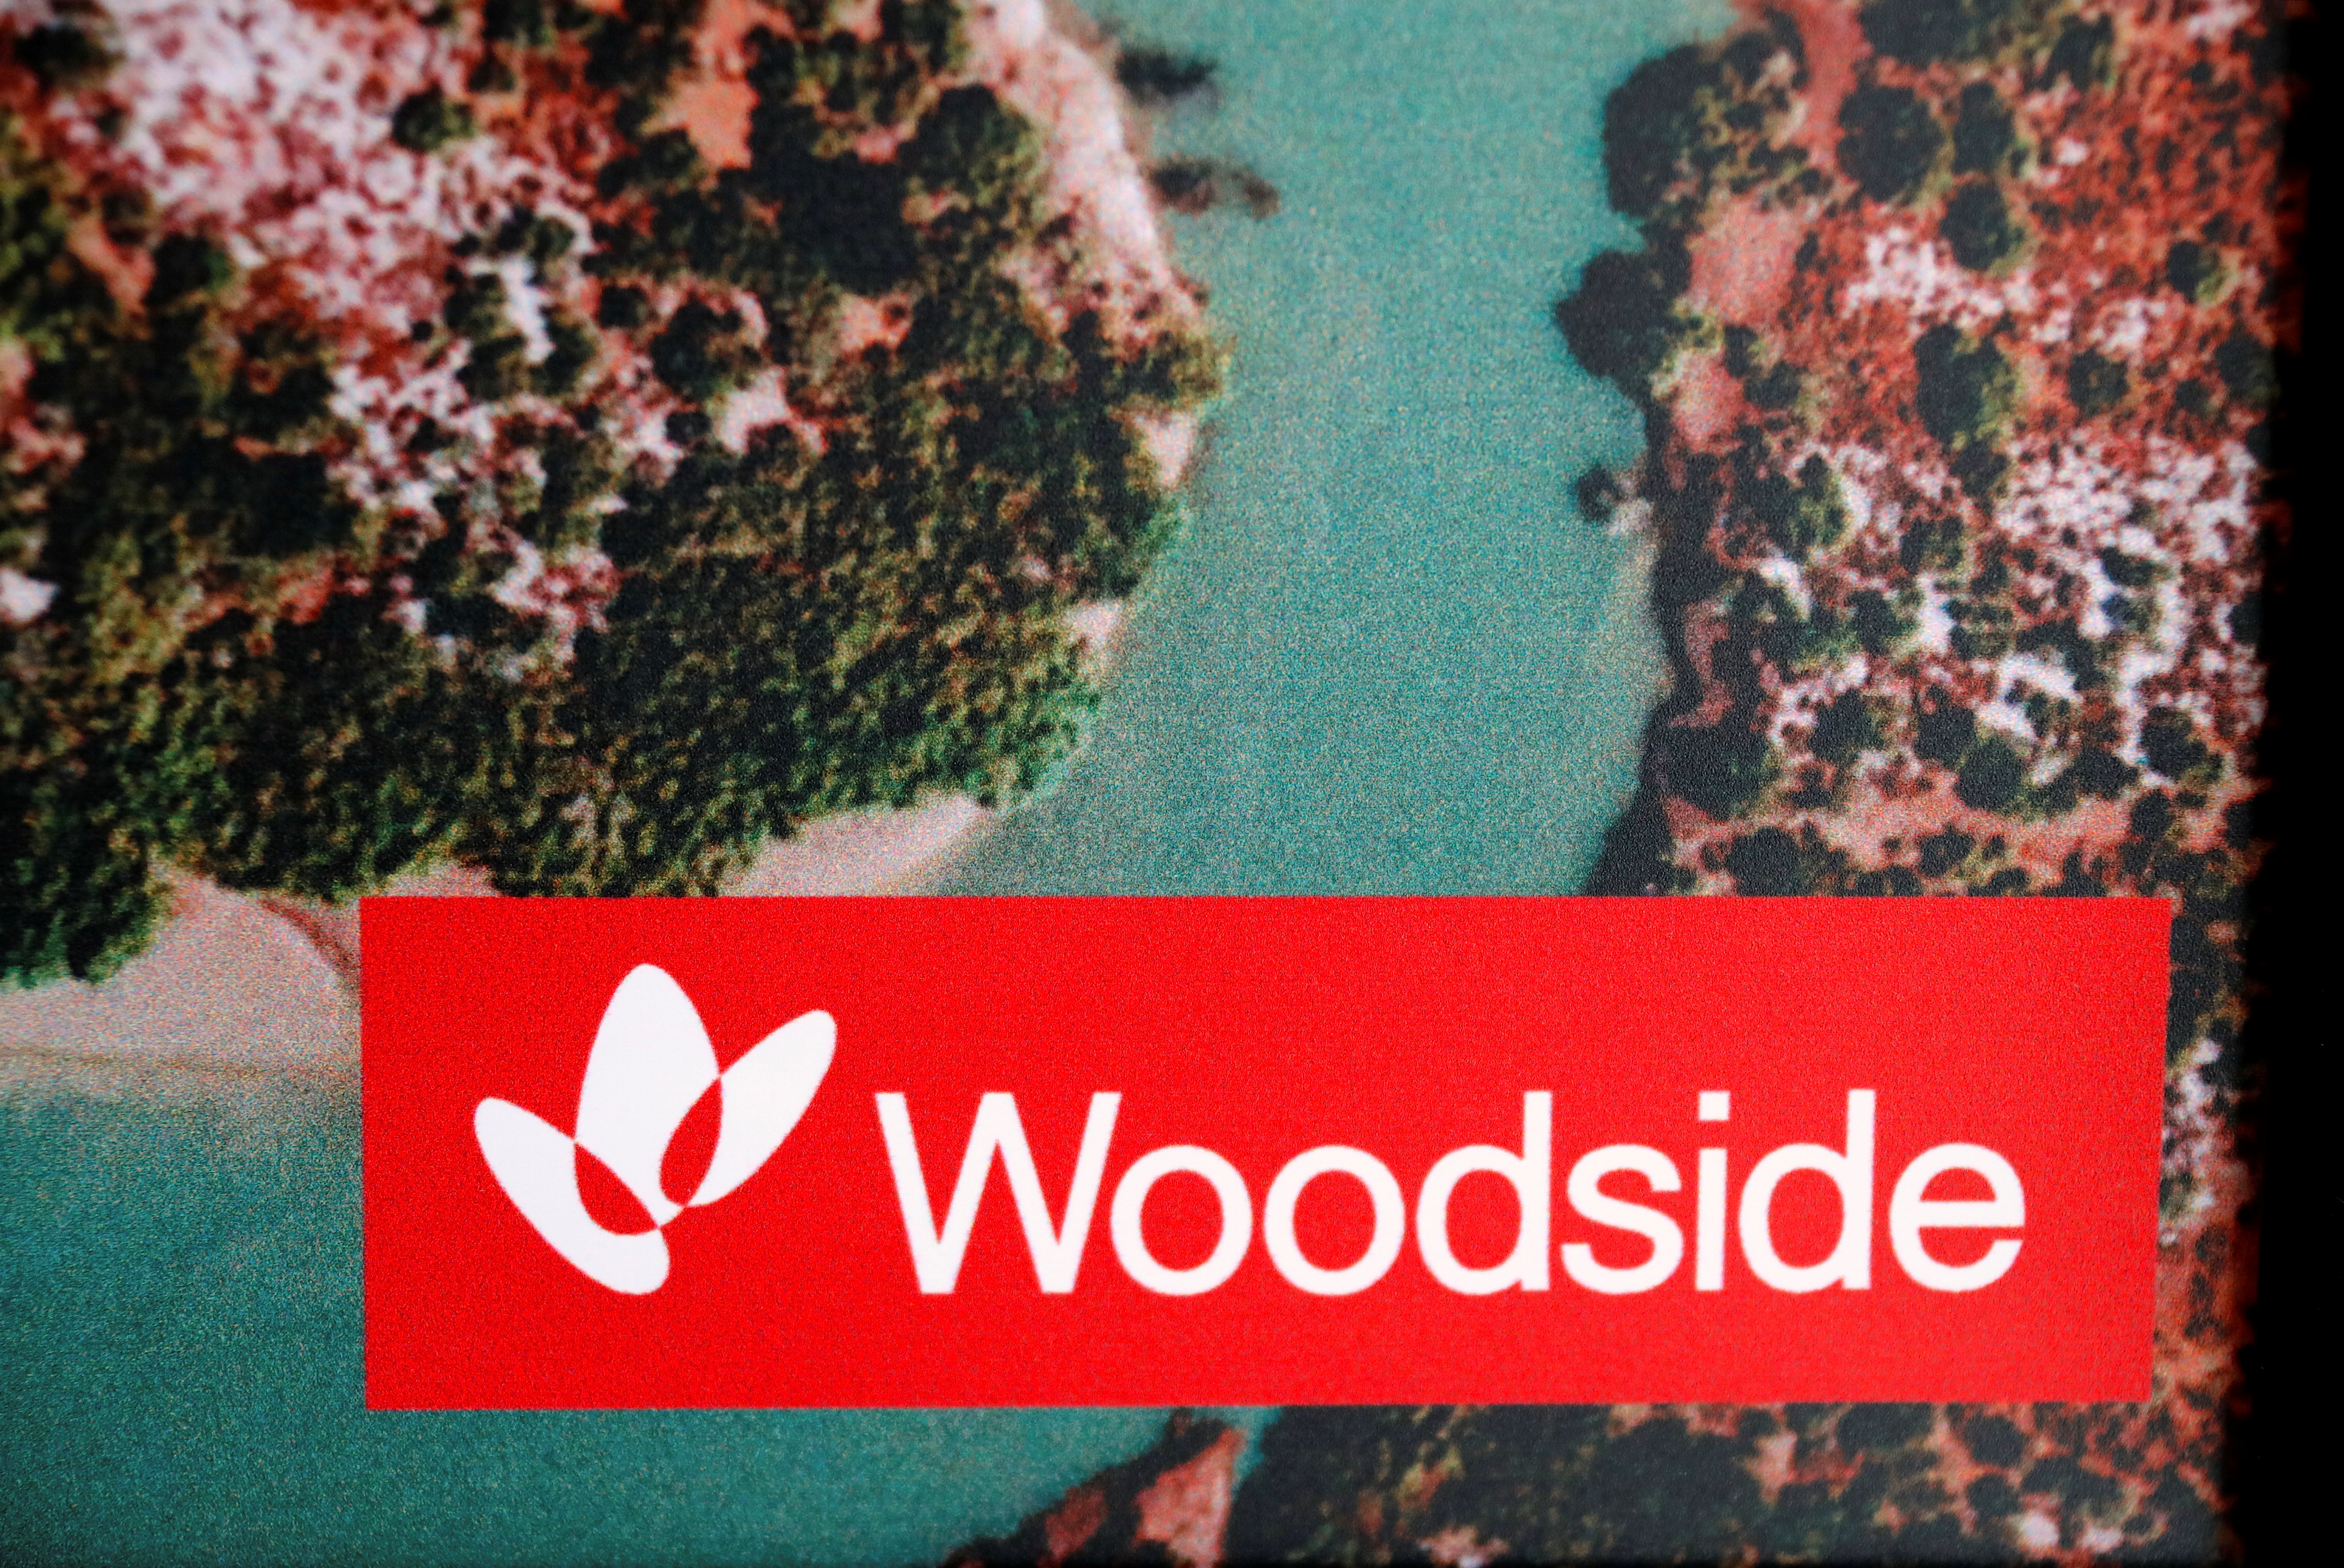 The logo for Woodside Petroleum, Australia's top independent oil and gas company, adorns a promotional poster on display at a briefing for investors in Sydney, Australia, May 23, 2018.   REUTERS/David Gray